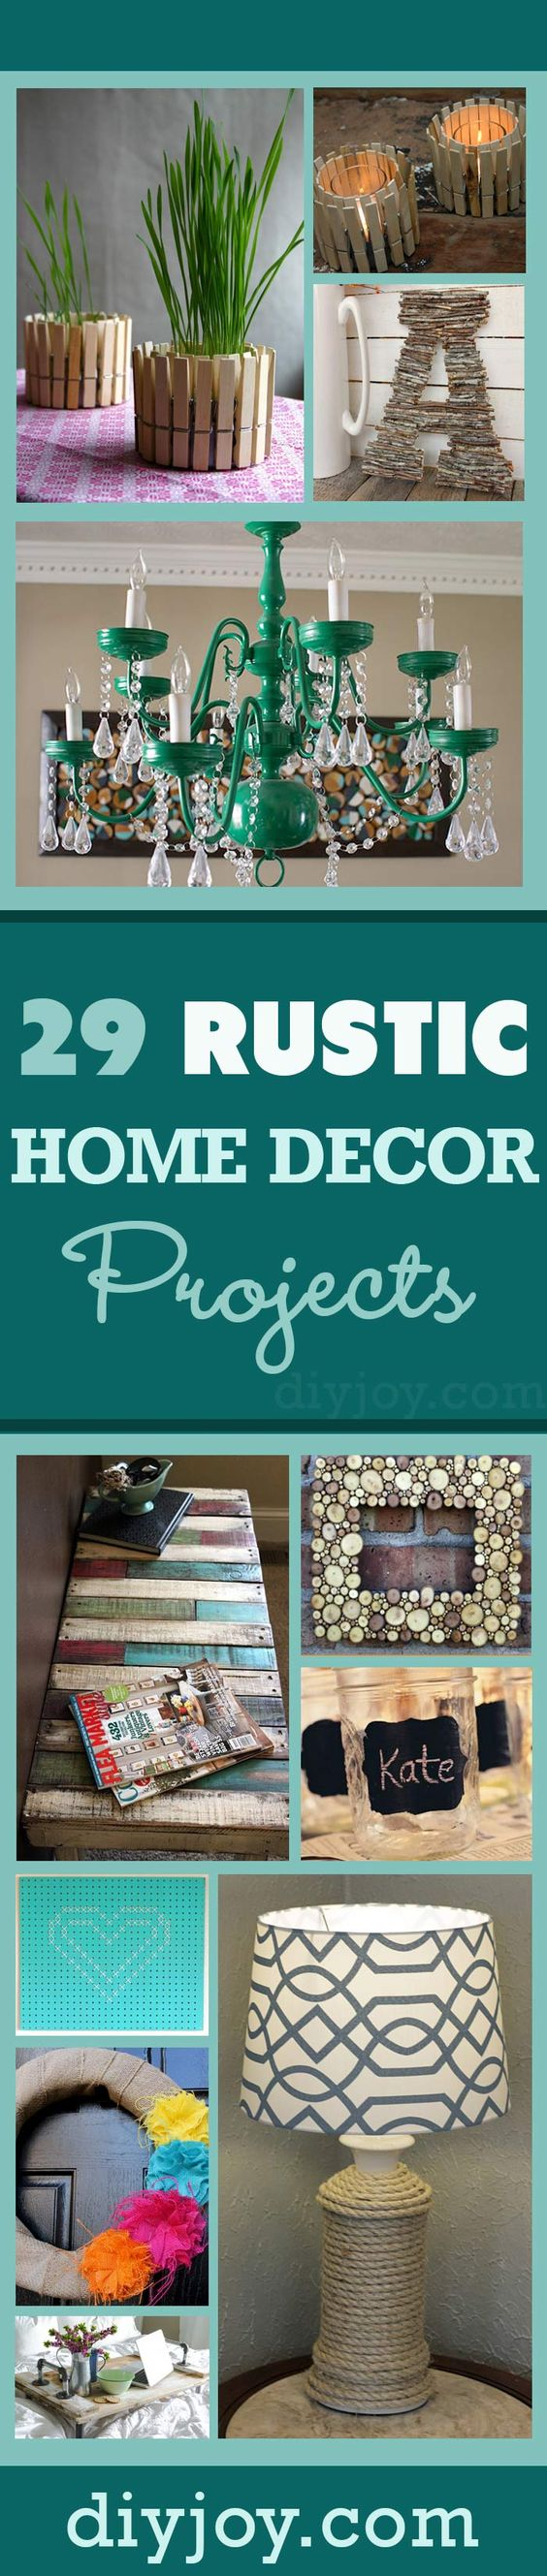 Pinterest the world s catalog of ideas - Do it yourself furniture ideas ...